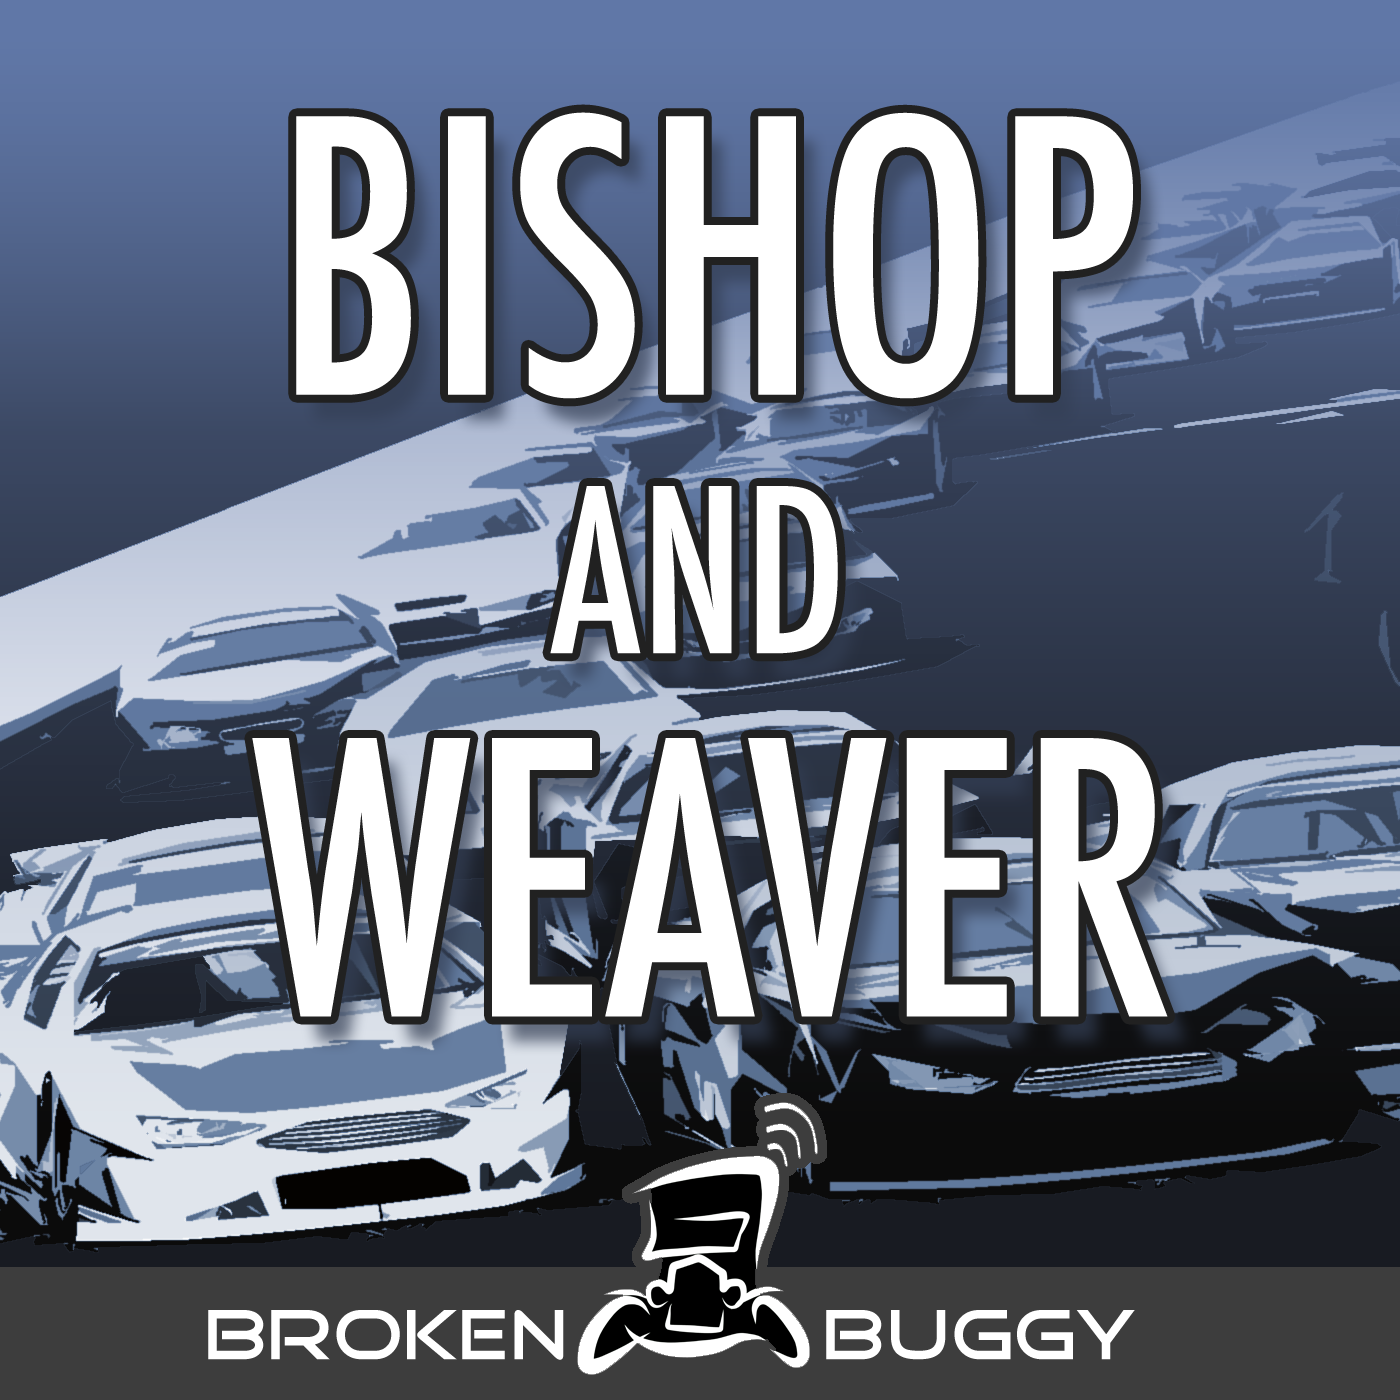 Bishop And Weaver - Short Track Asphalt Pavement Racing News & Discussion